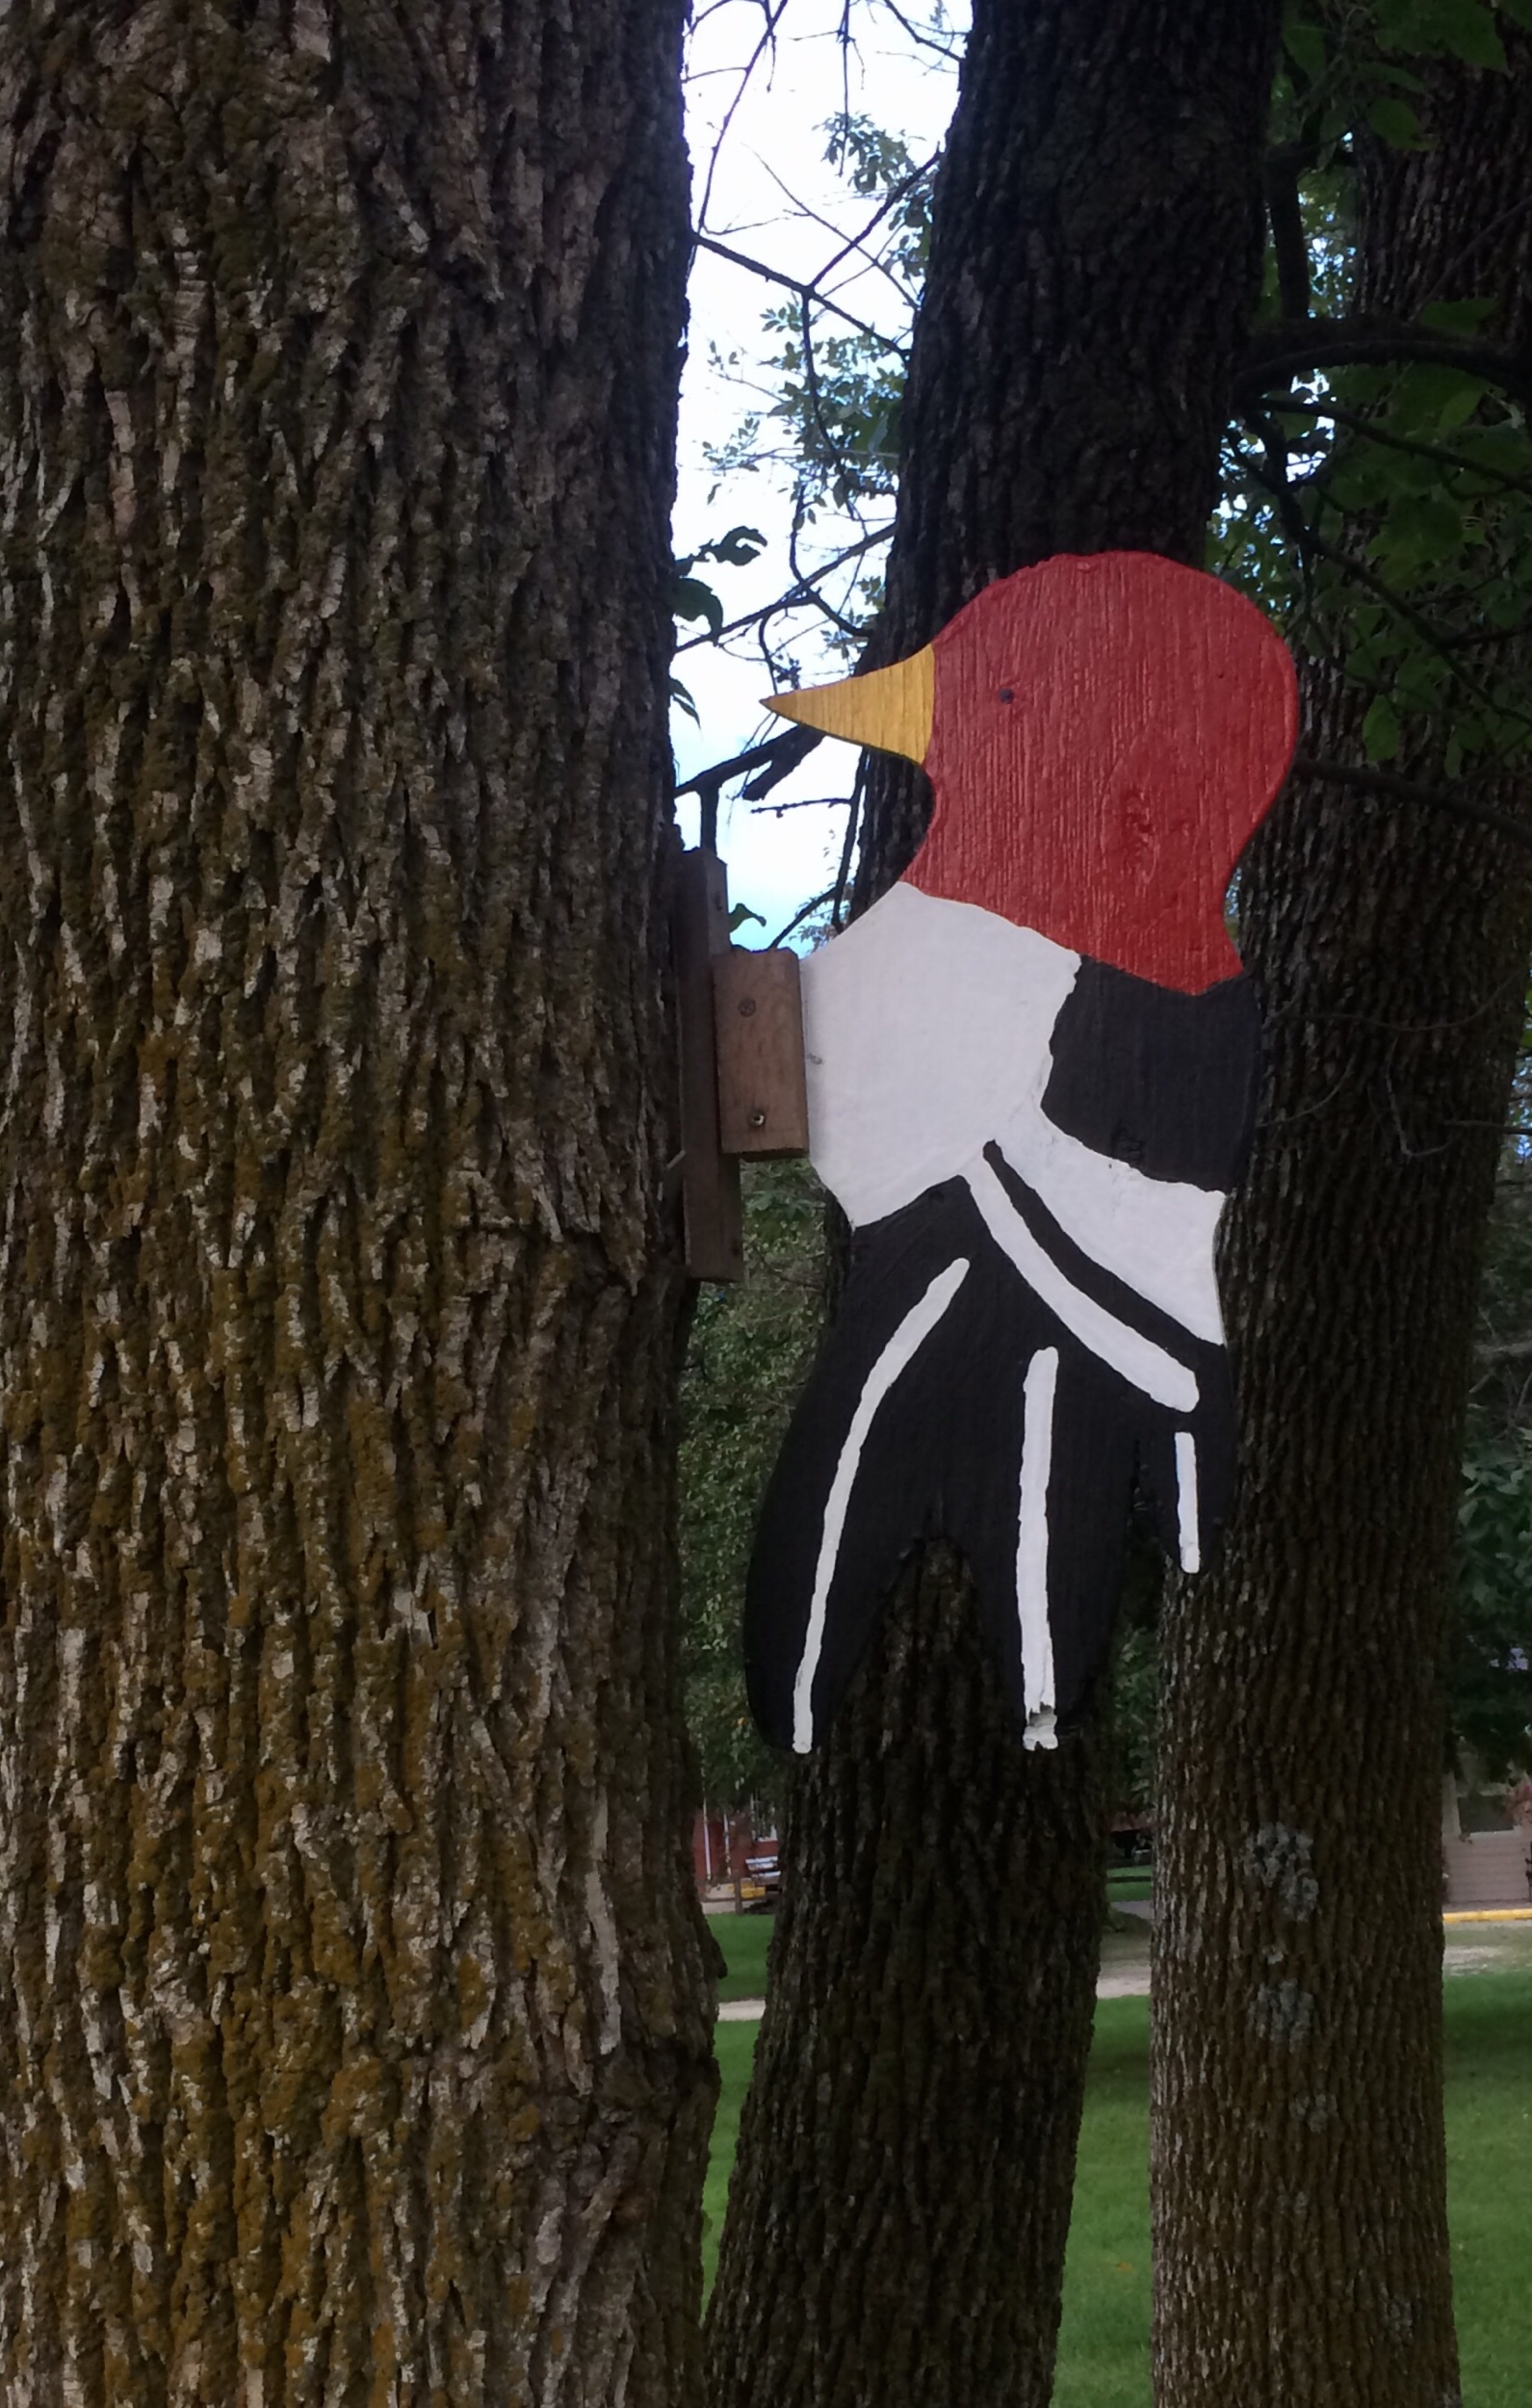 Letting Red-headed Woodpeckers know they are welcome.